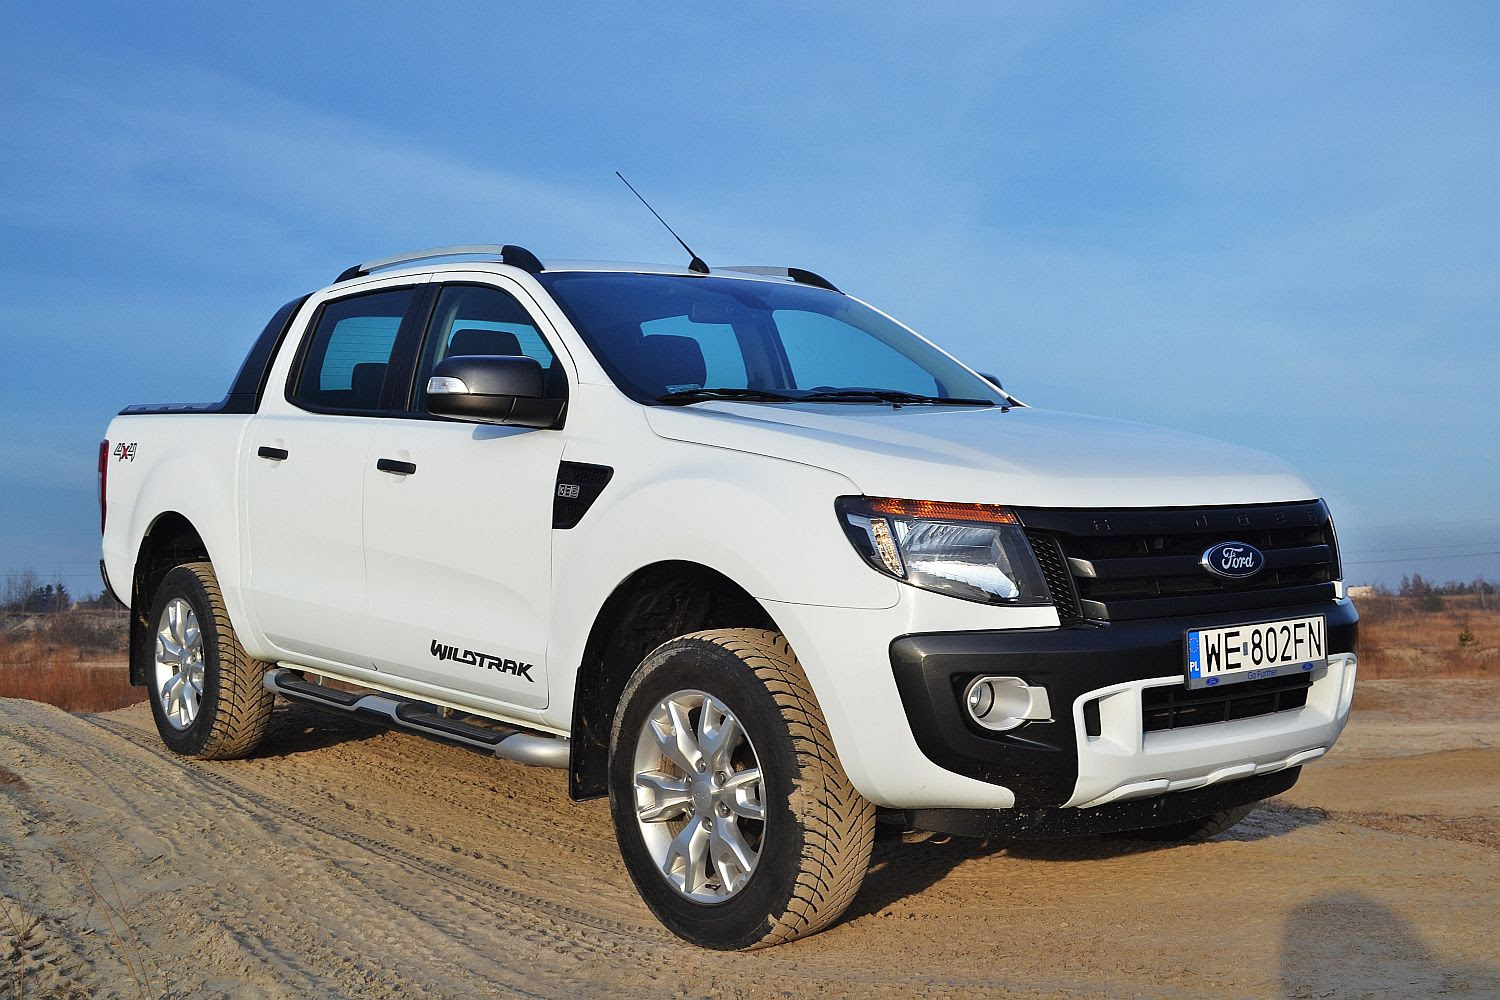 Ford Ranger 3 2 Wildtrack First Drive Review 2012 Itsgotwheels Image 5 ...